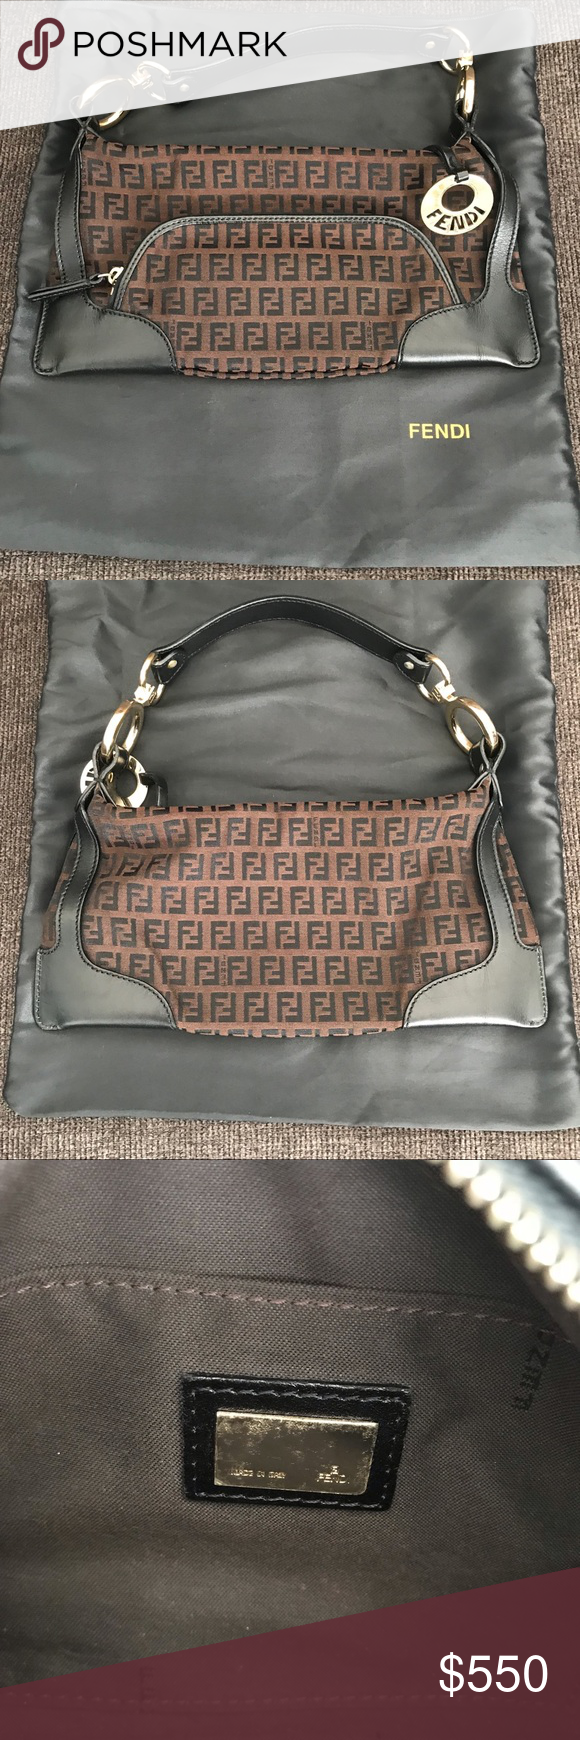 c18fdaa67a93 Fendi Zucca Leather Trim Authentic Fendi Zucca Leather Trim Authentic The  bag features a dark chocolate